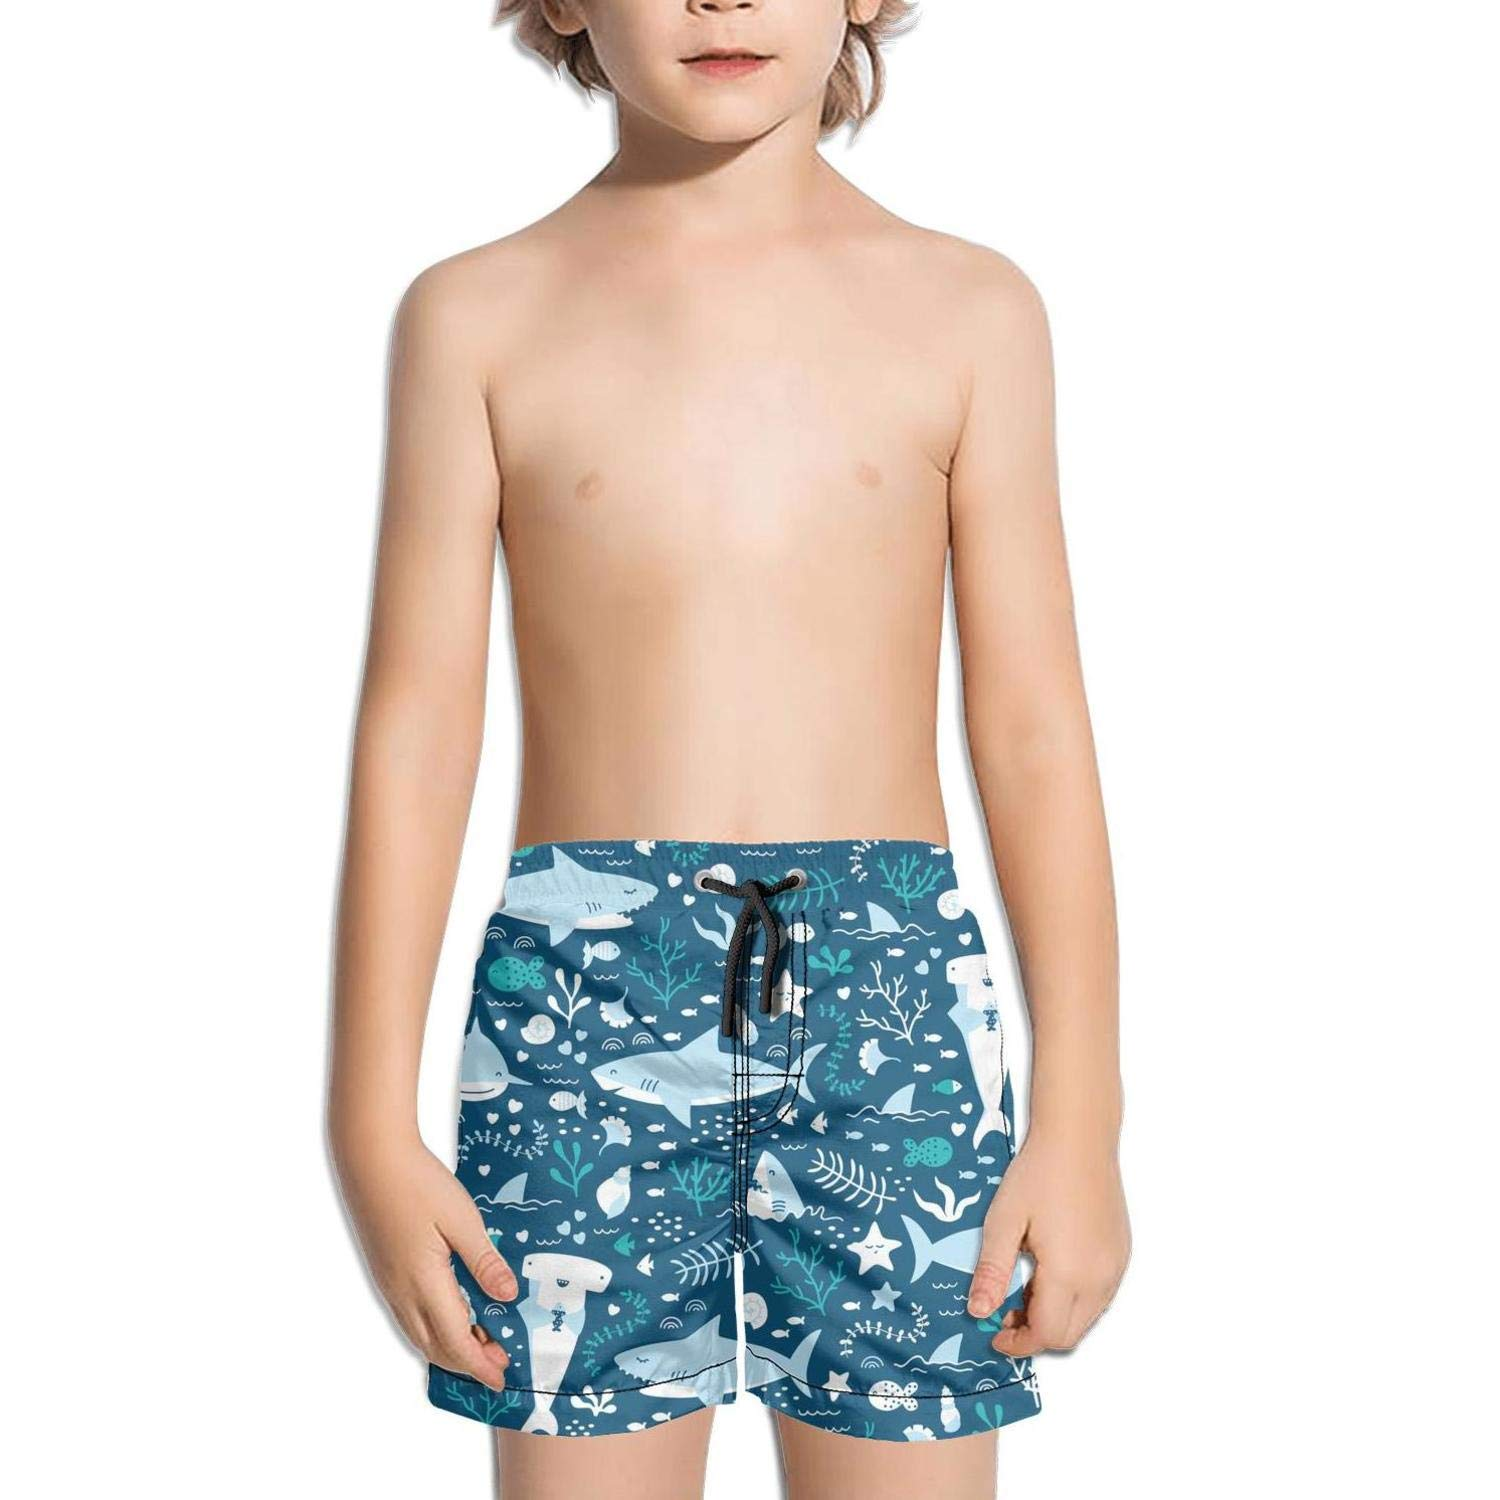 Boys Boardshorts Cute Whales and Sharks Quick Dry Bathing Suits Beach Board Shorts